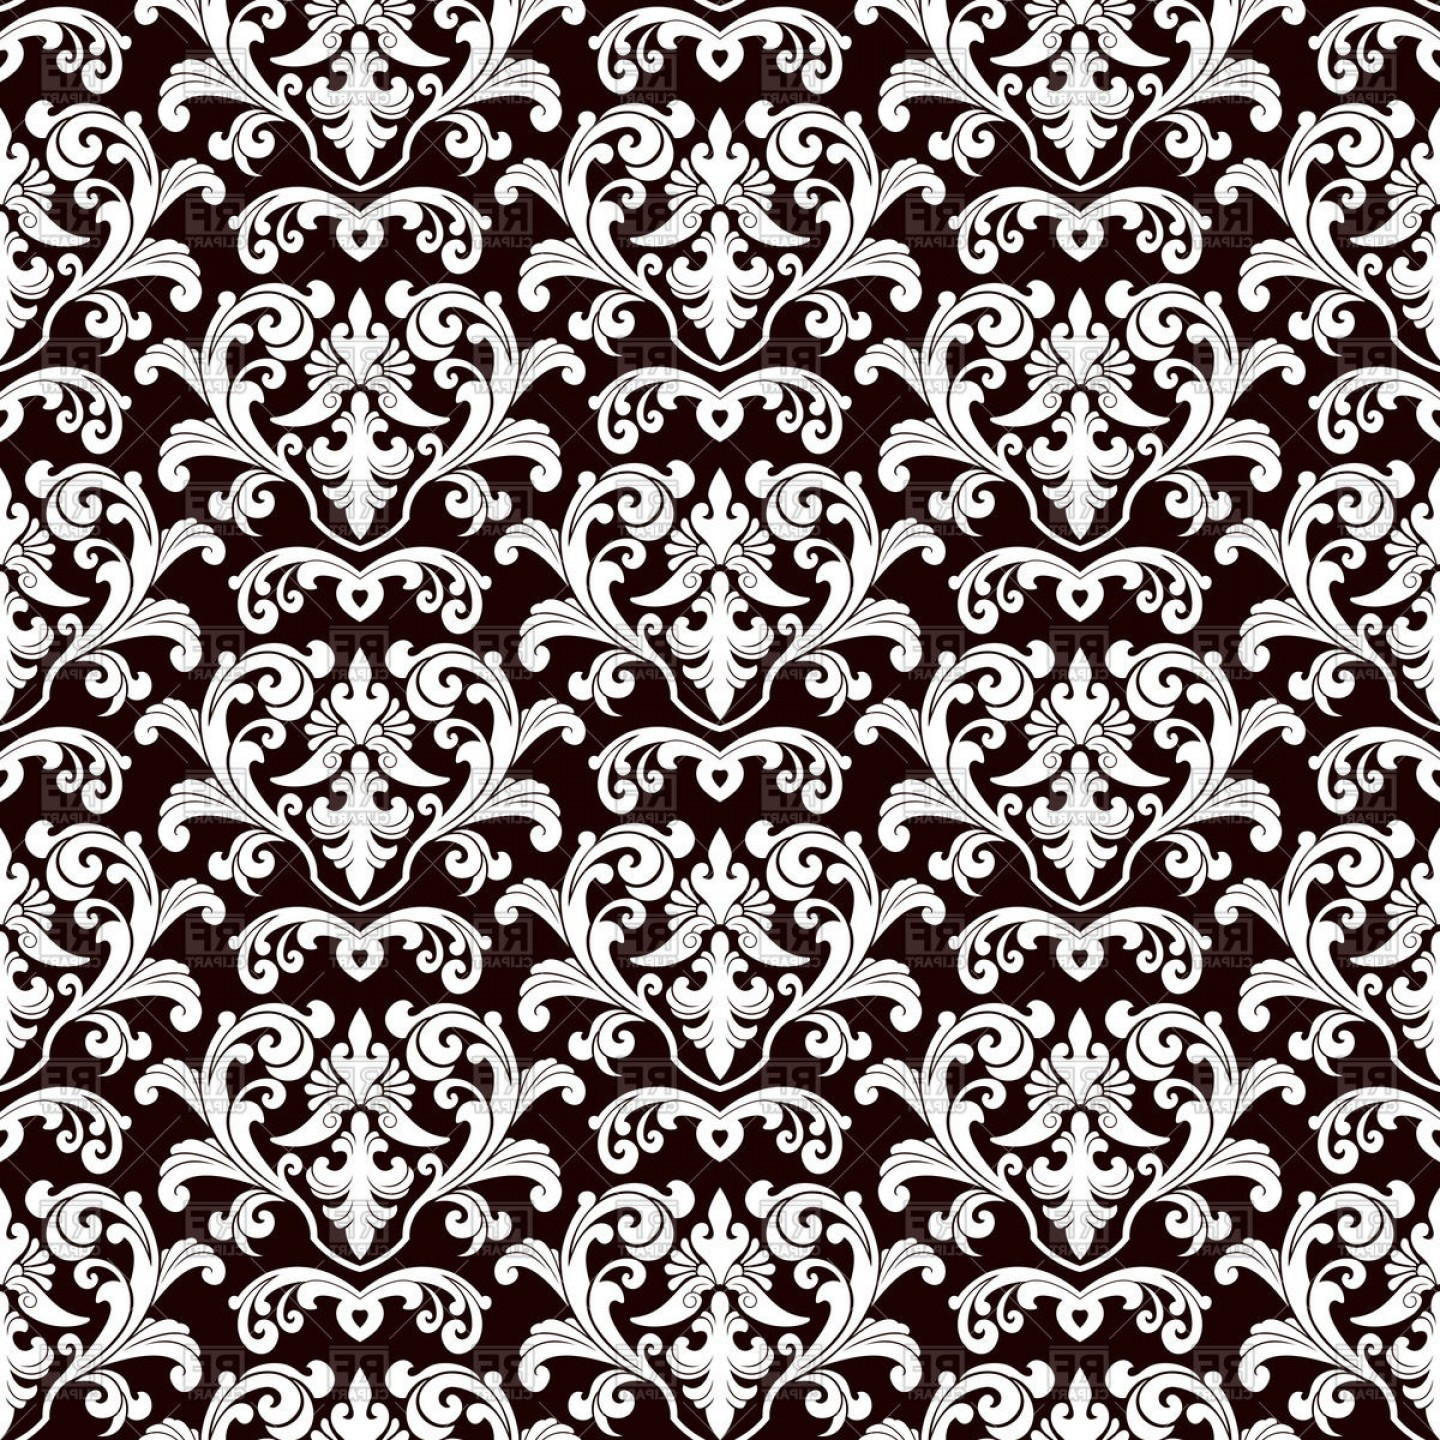 Damask Background Vector Art: Seamless Black Damask Pattern Vector Clipart